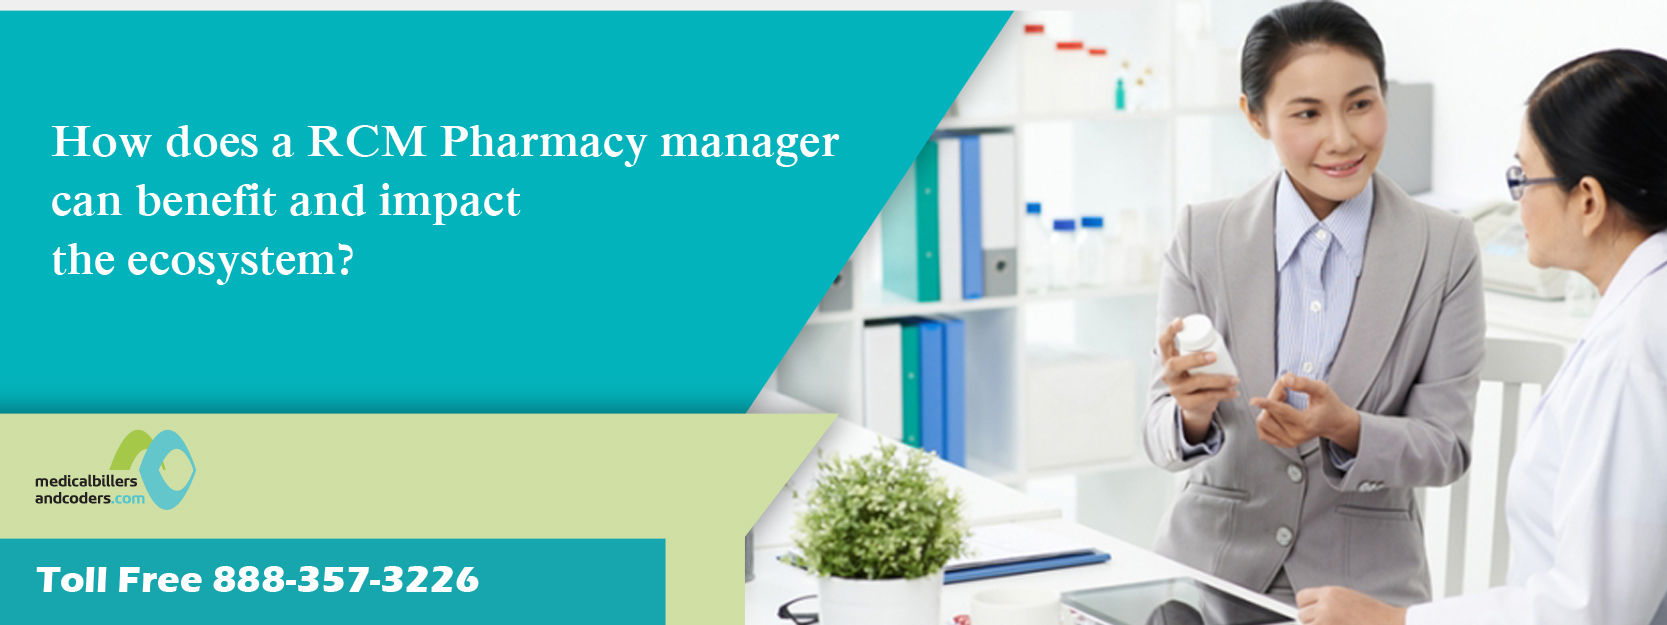 How-does-a-RCM-Pharmacy-manager-can-benefit-and-impact-the-ecosystem